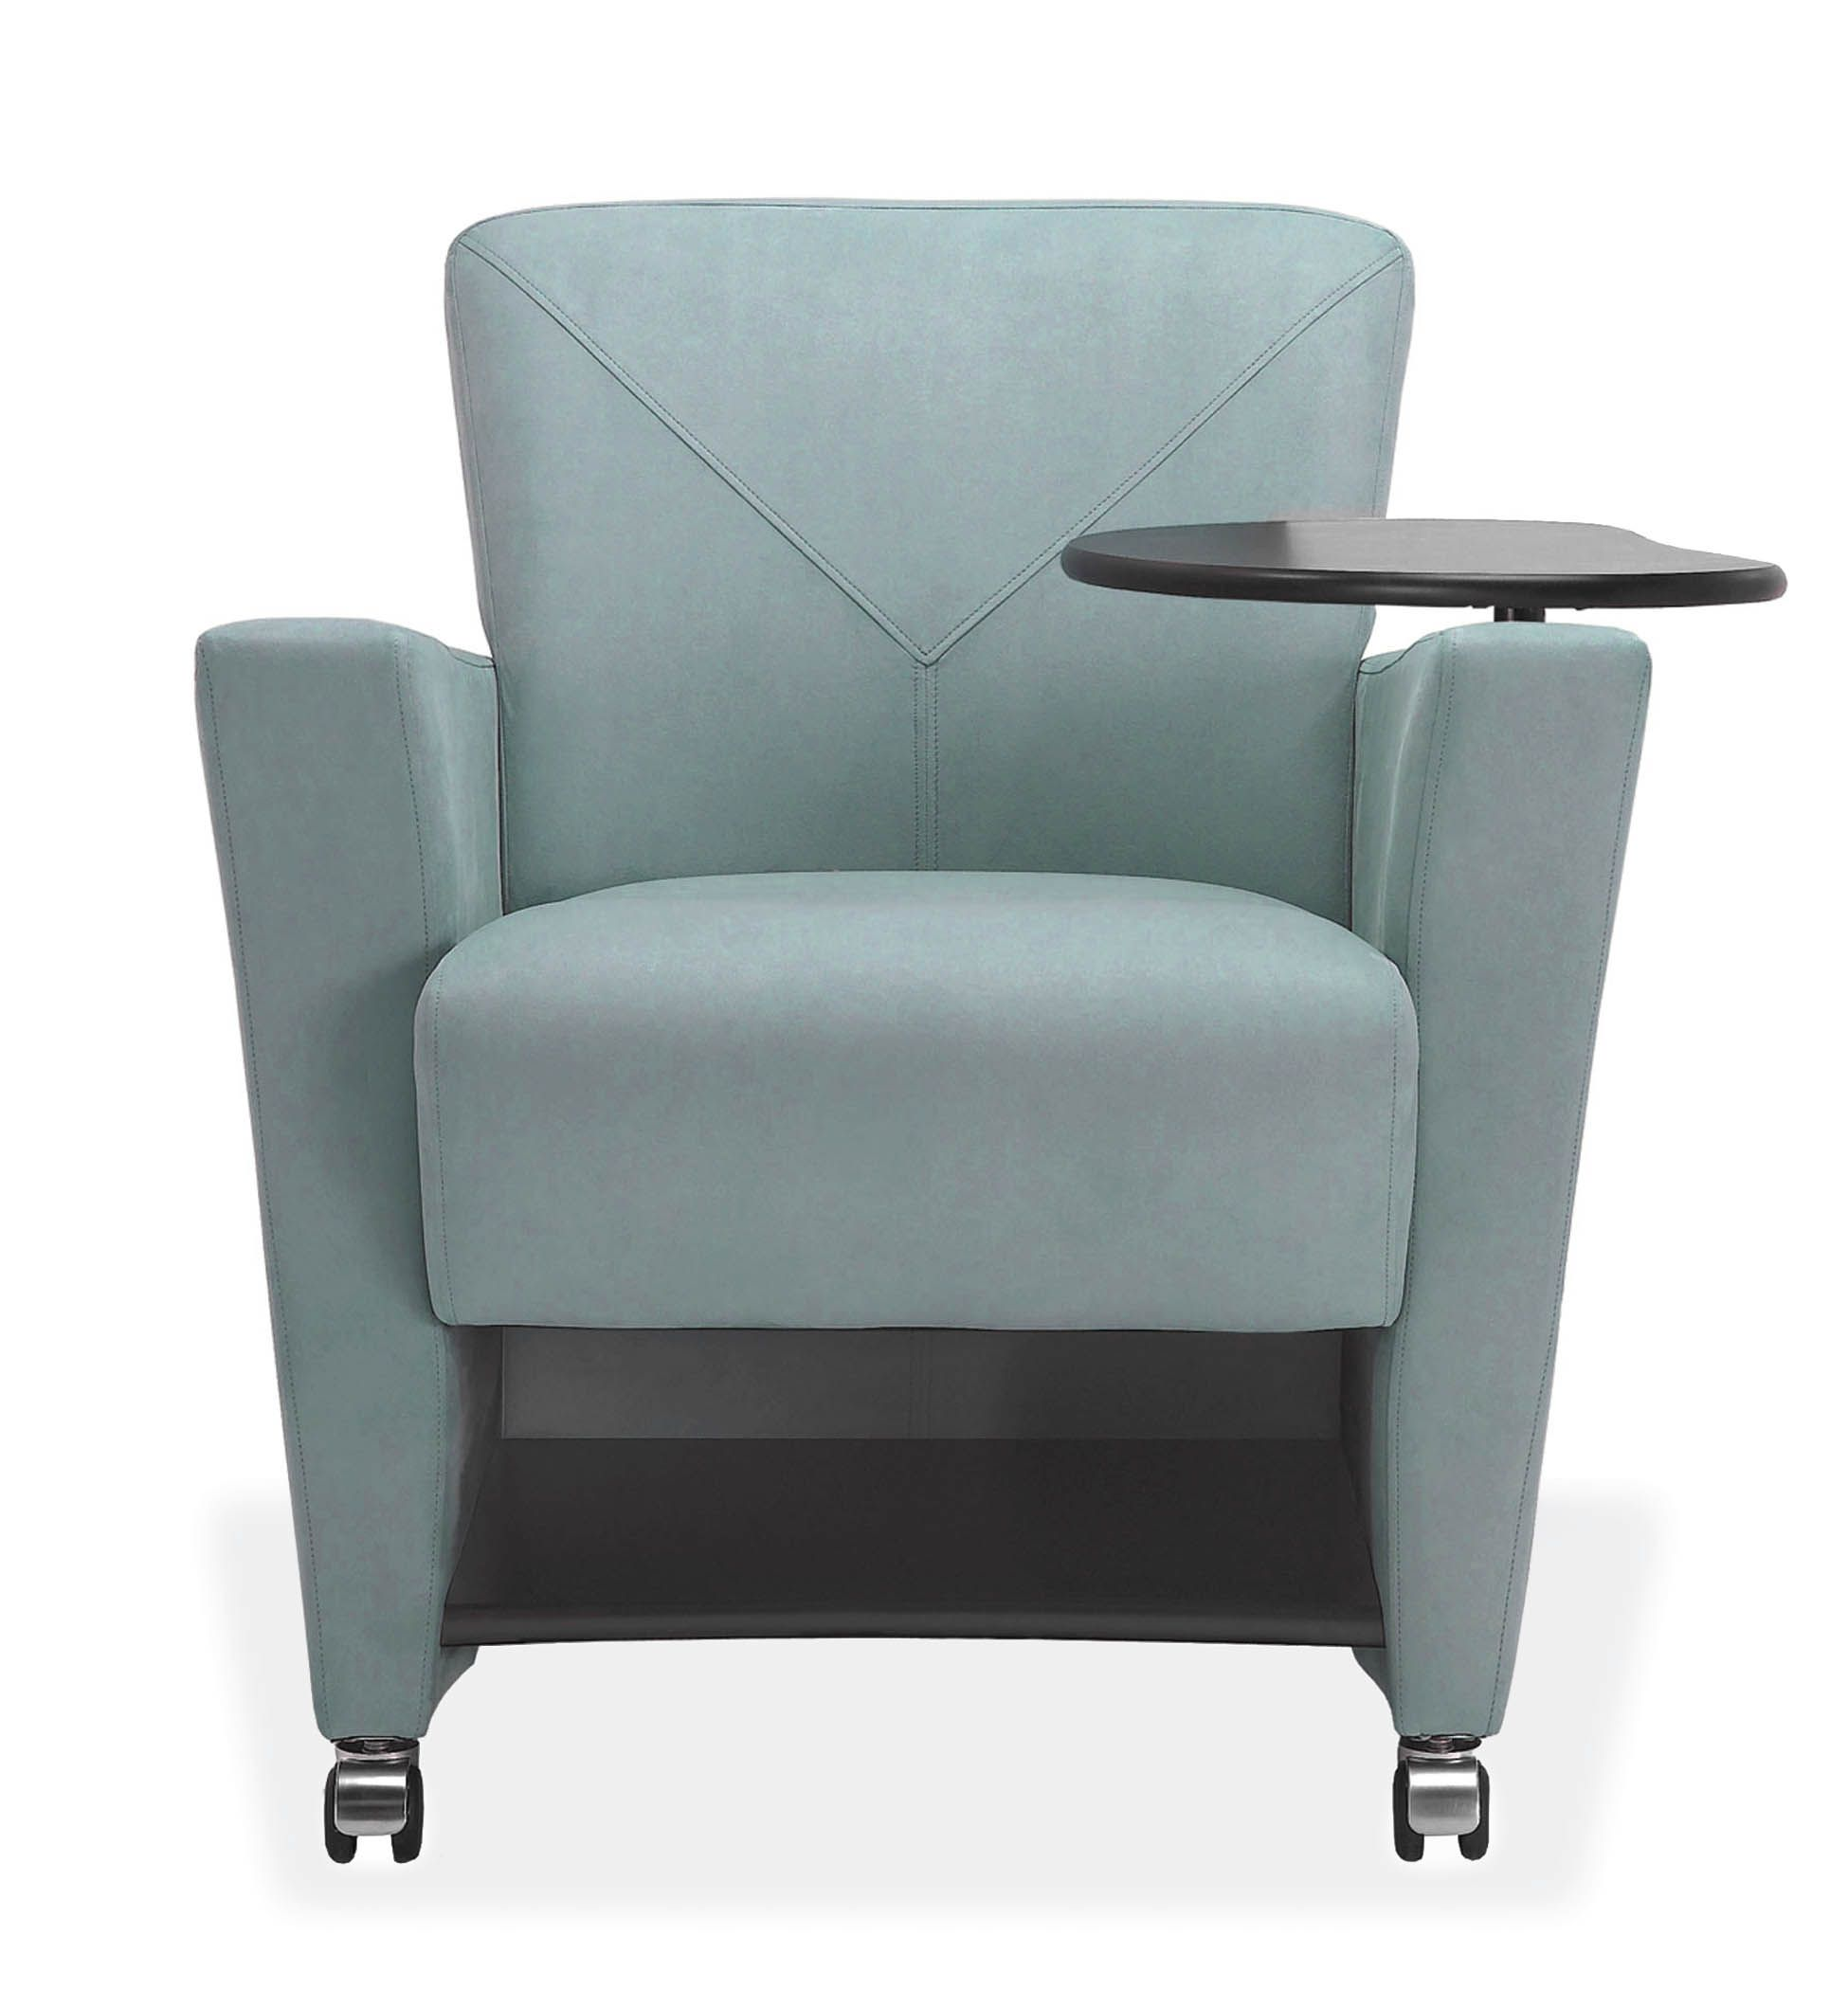 Groovy The Venture Tablet Arm Chair With Storage The Lounge Ibusinesslaw Wood Chair Design Ideas Ibusinesslaworg